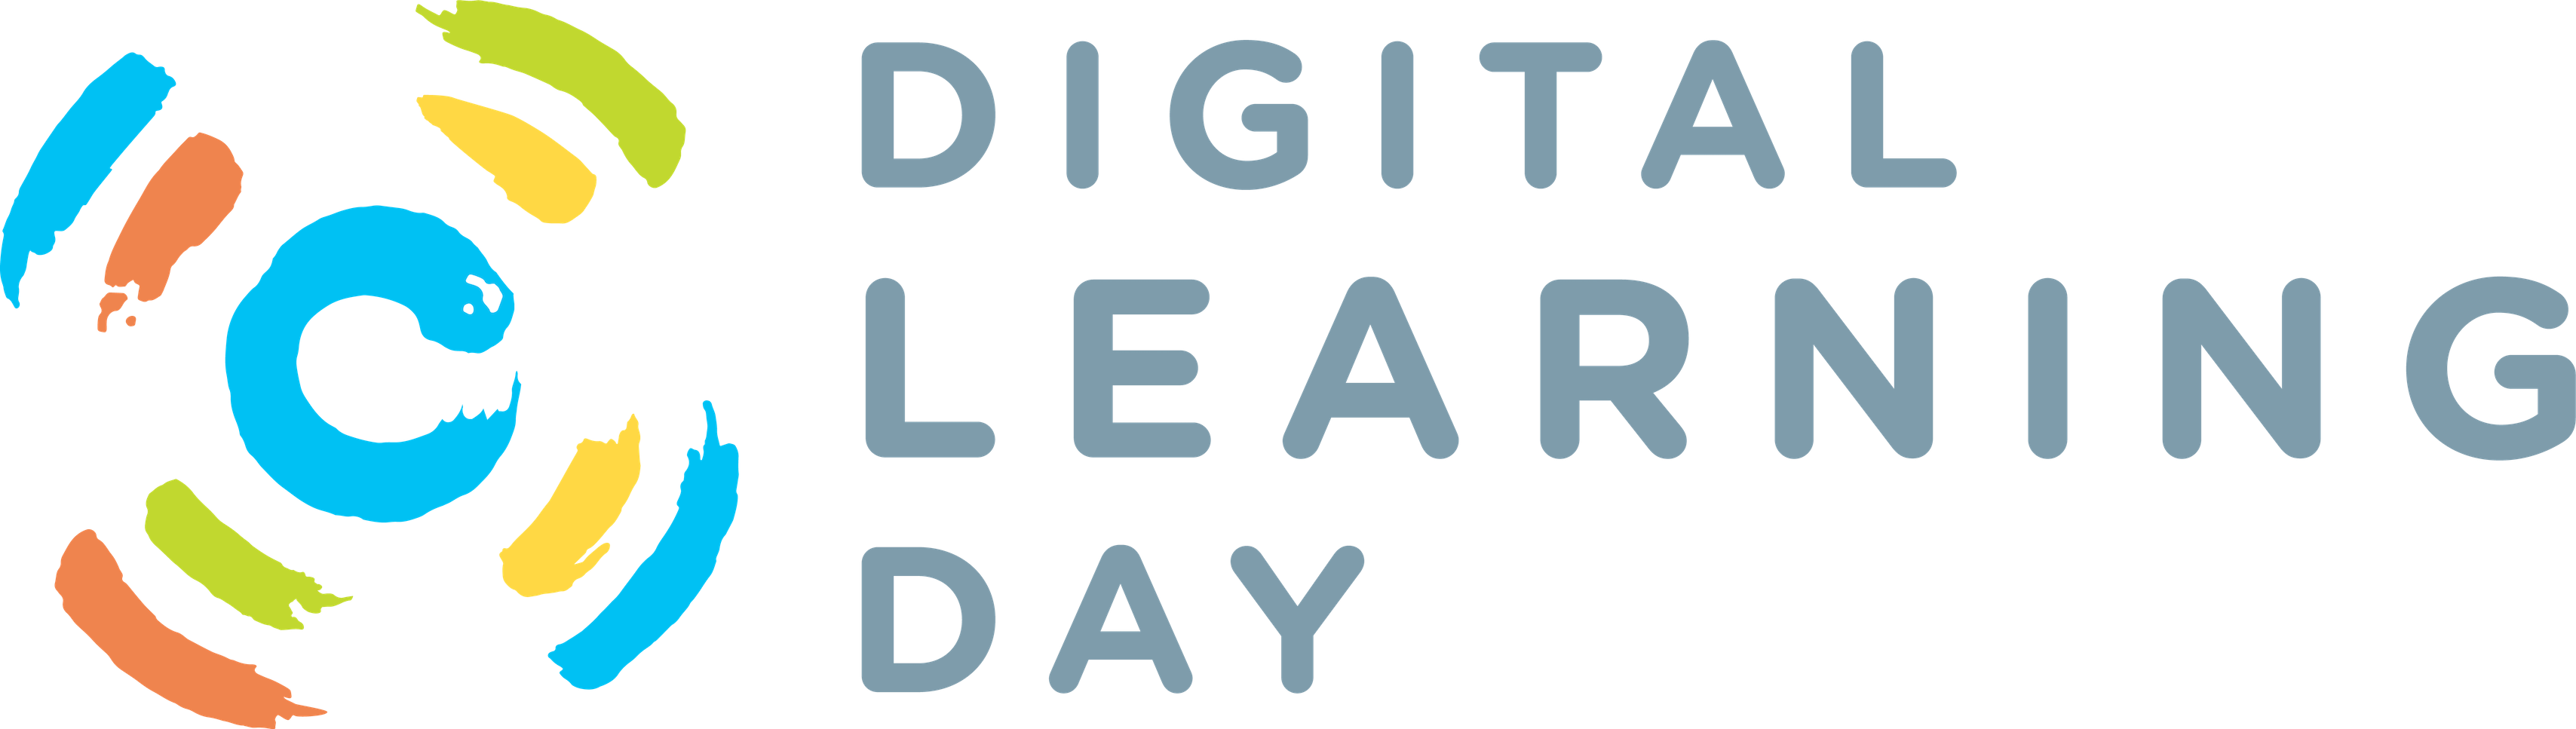 Digital Leaning Day